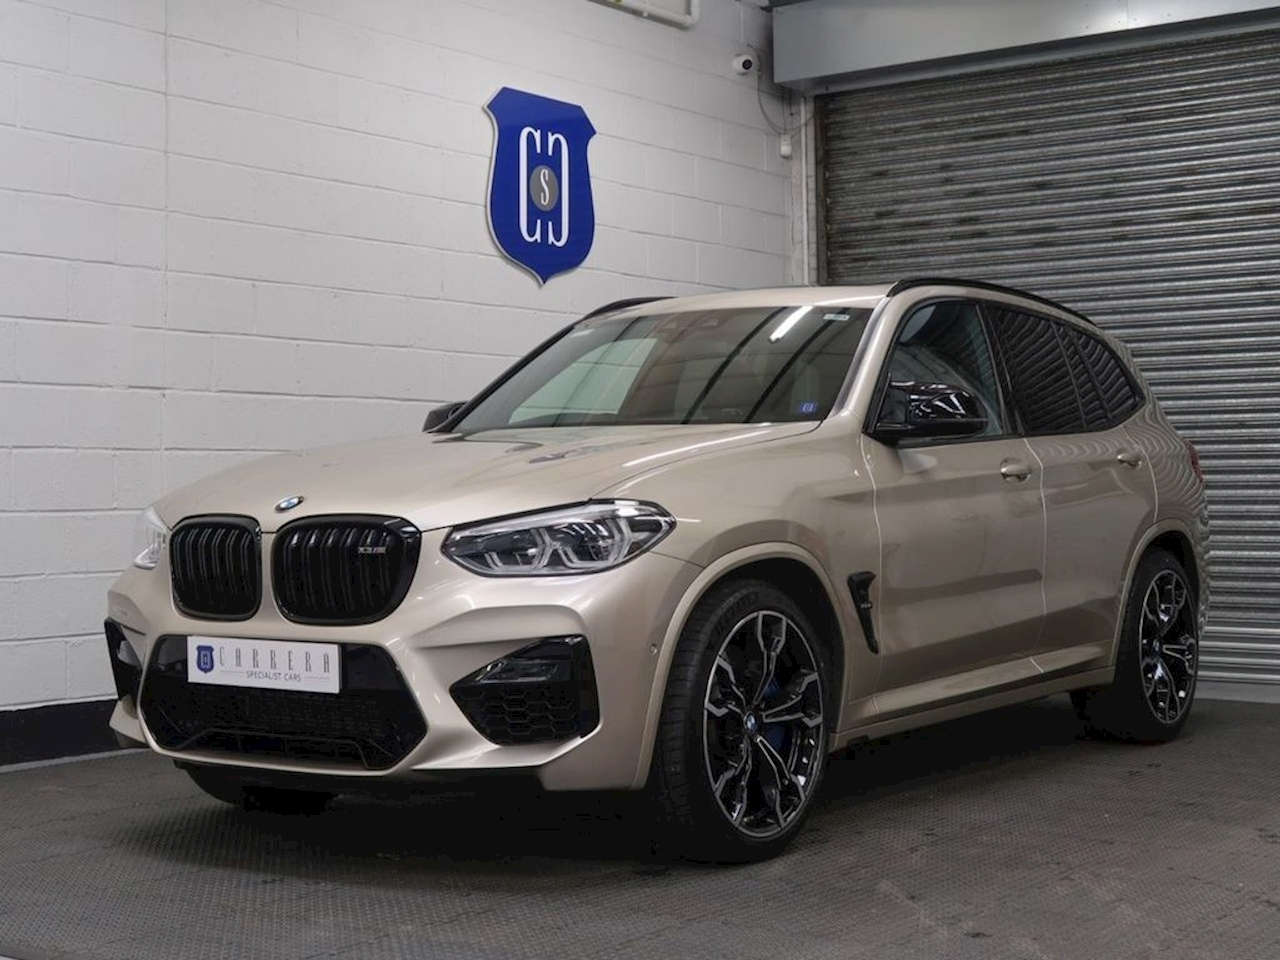 BMW X3 M Competition Estate 3.0 Automatic Petrol